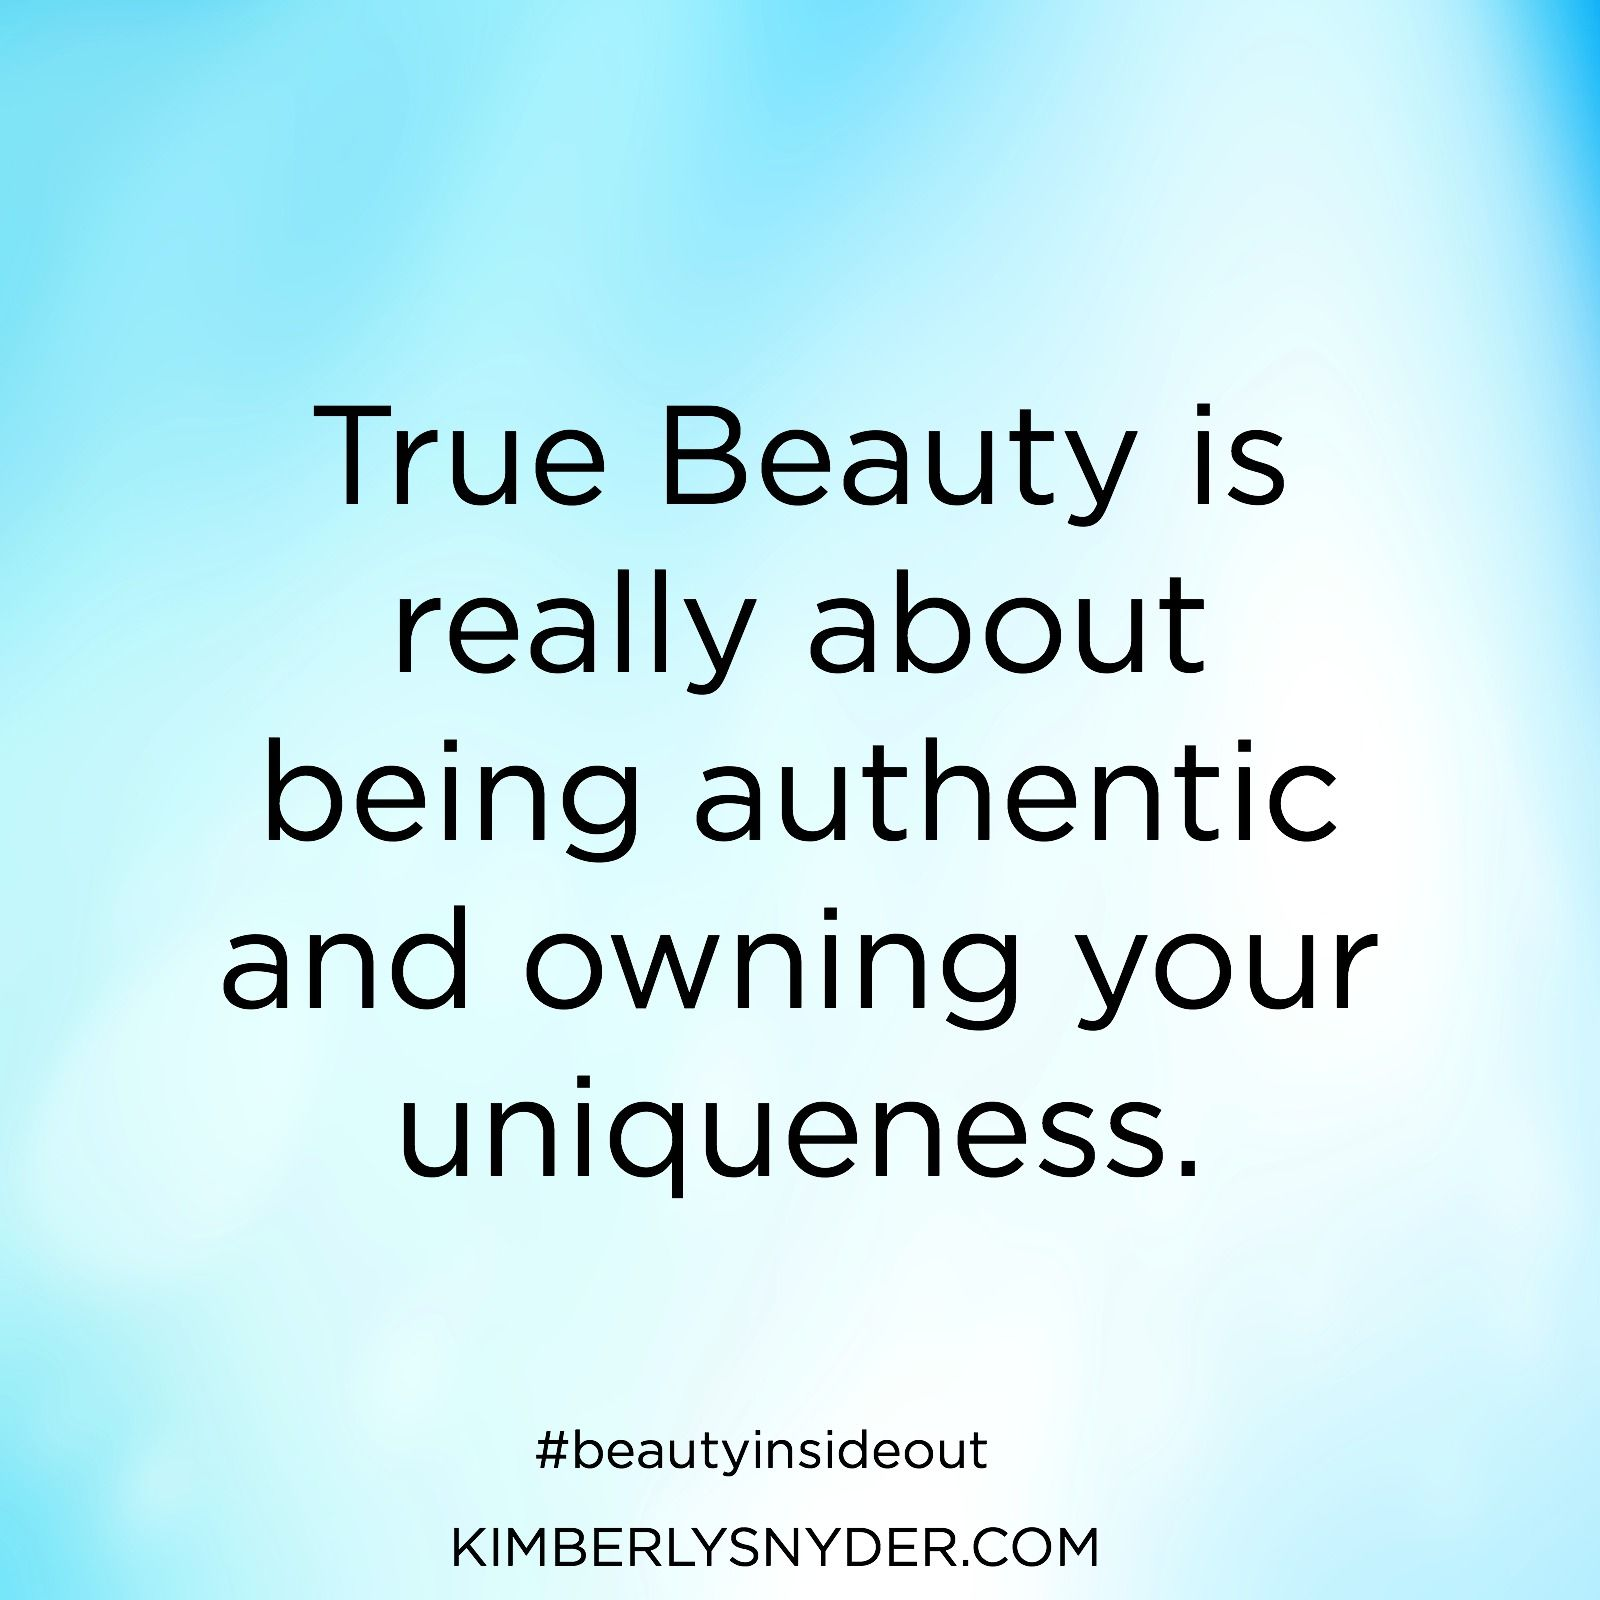 Quotes On Being Positive True Beauty Is Really About Being Authentic And Owning Your